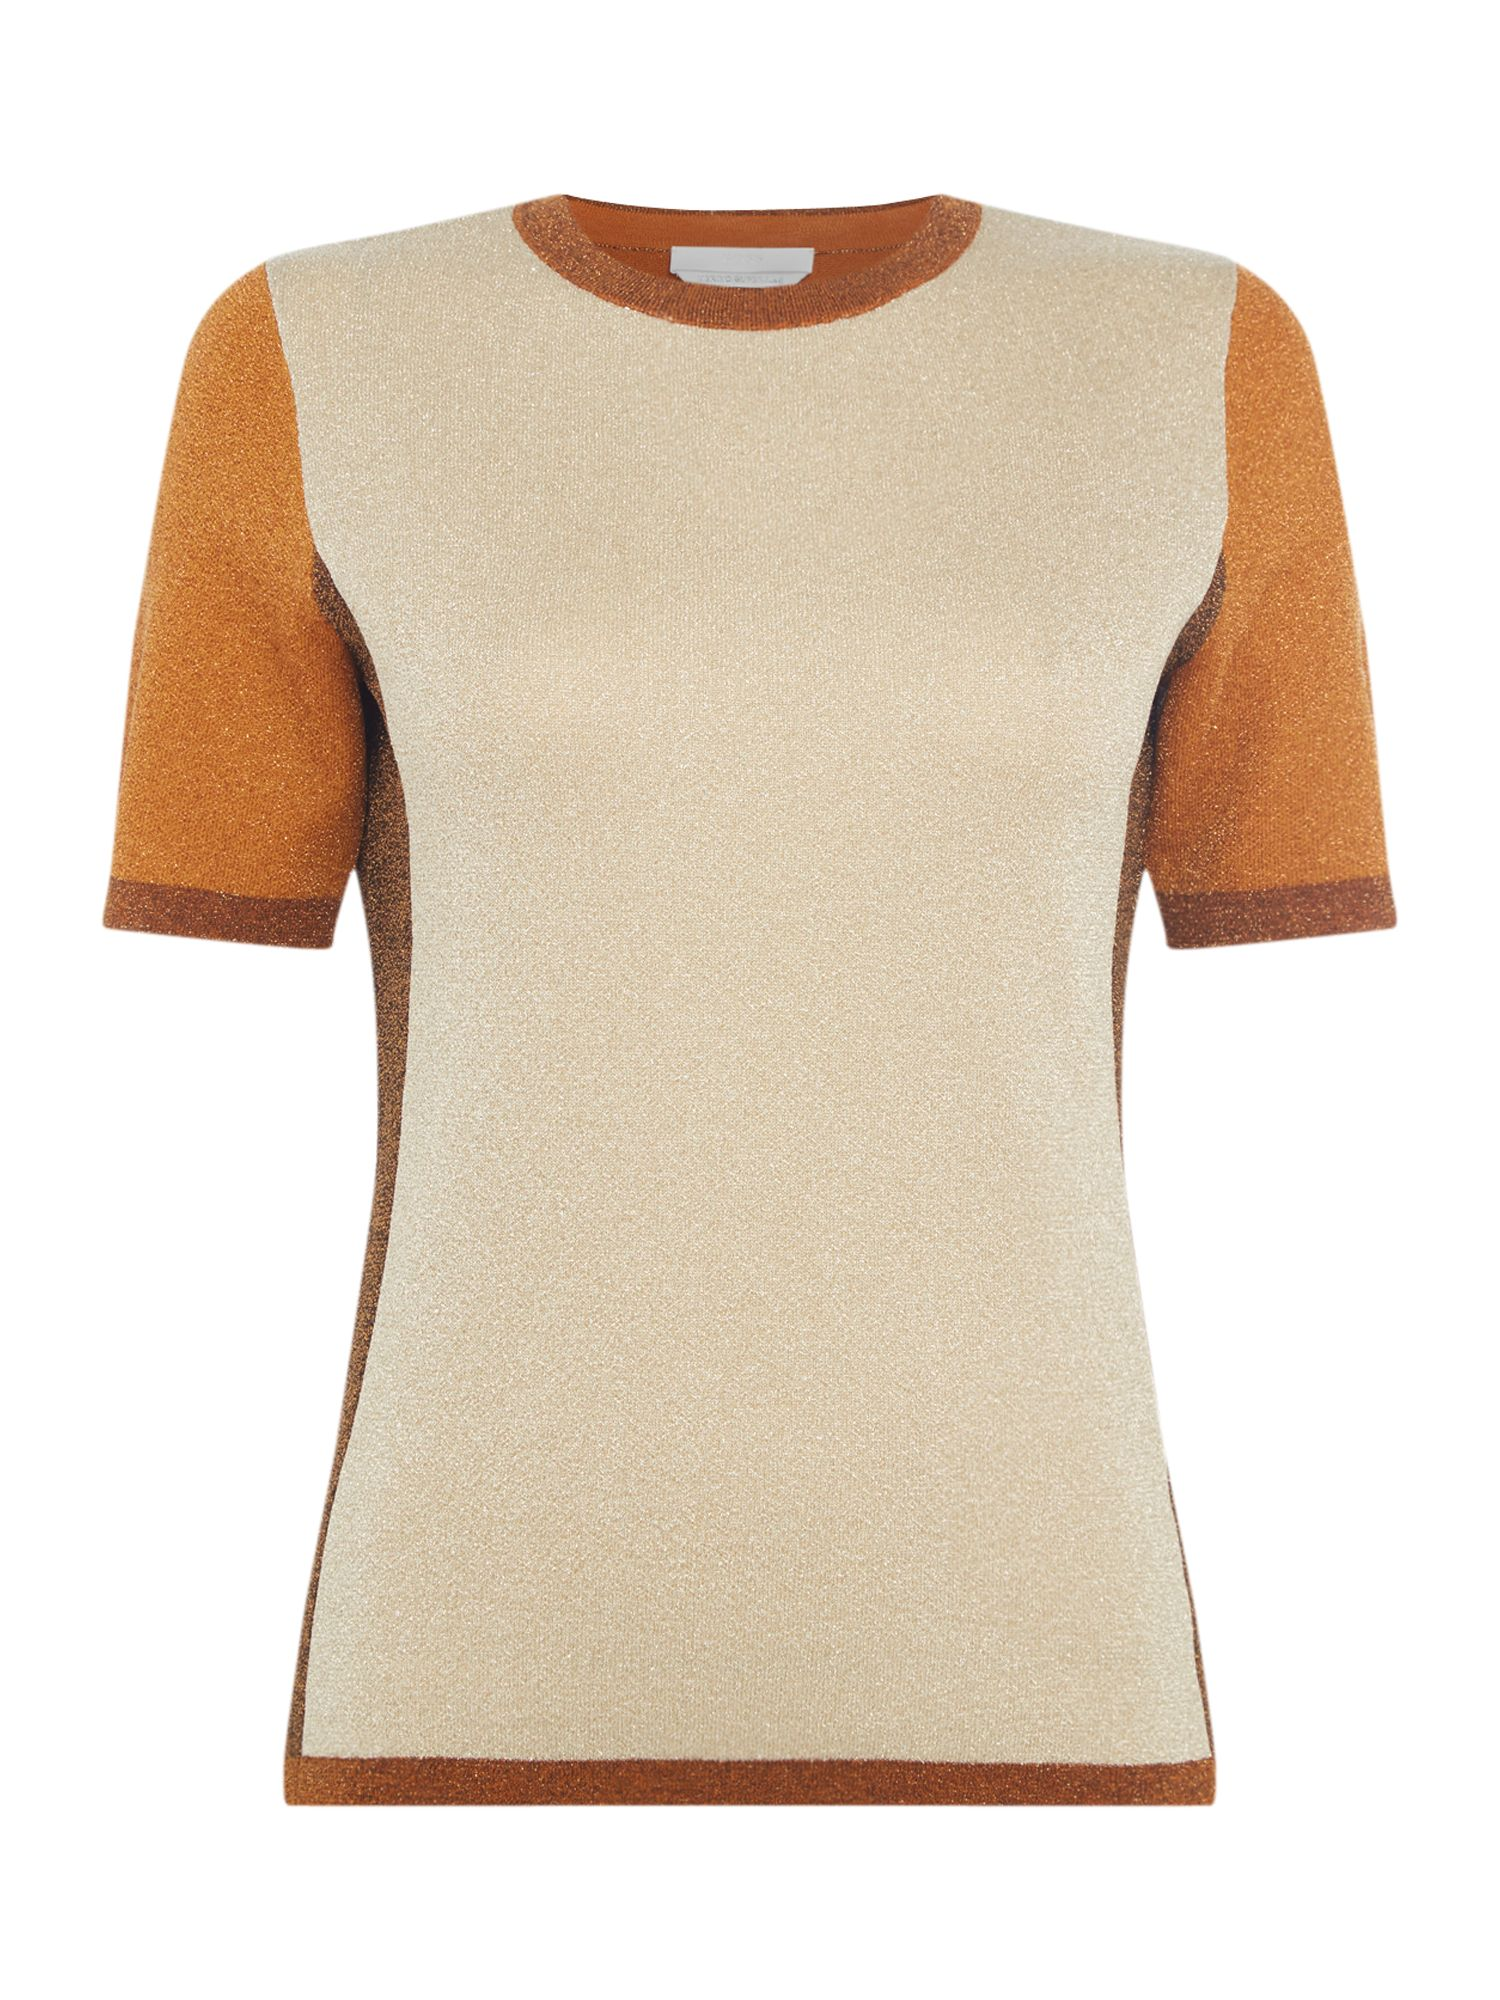 Hugo Boss Fifer lurex colour block knitted top, Gold